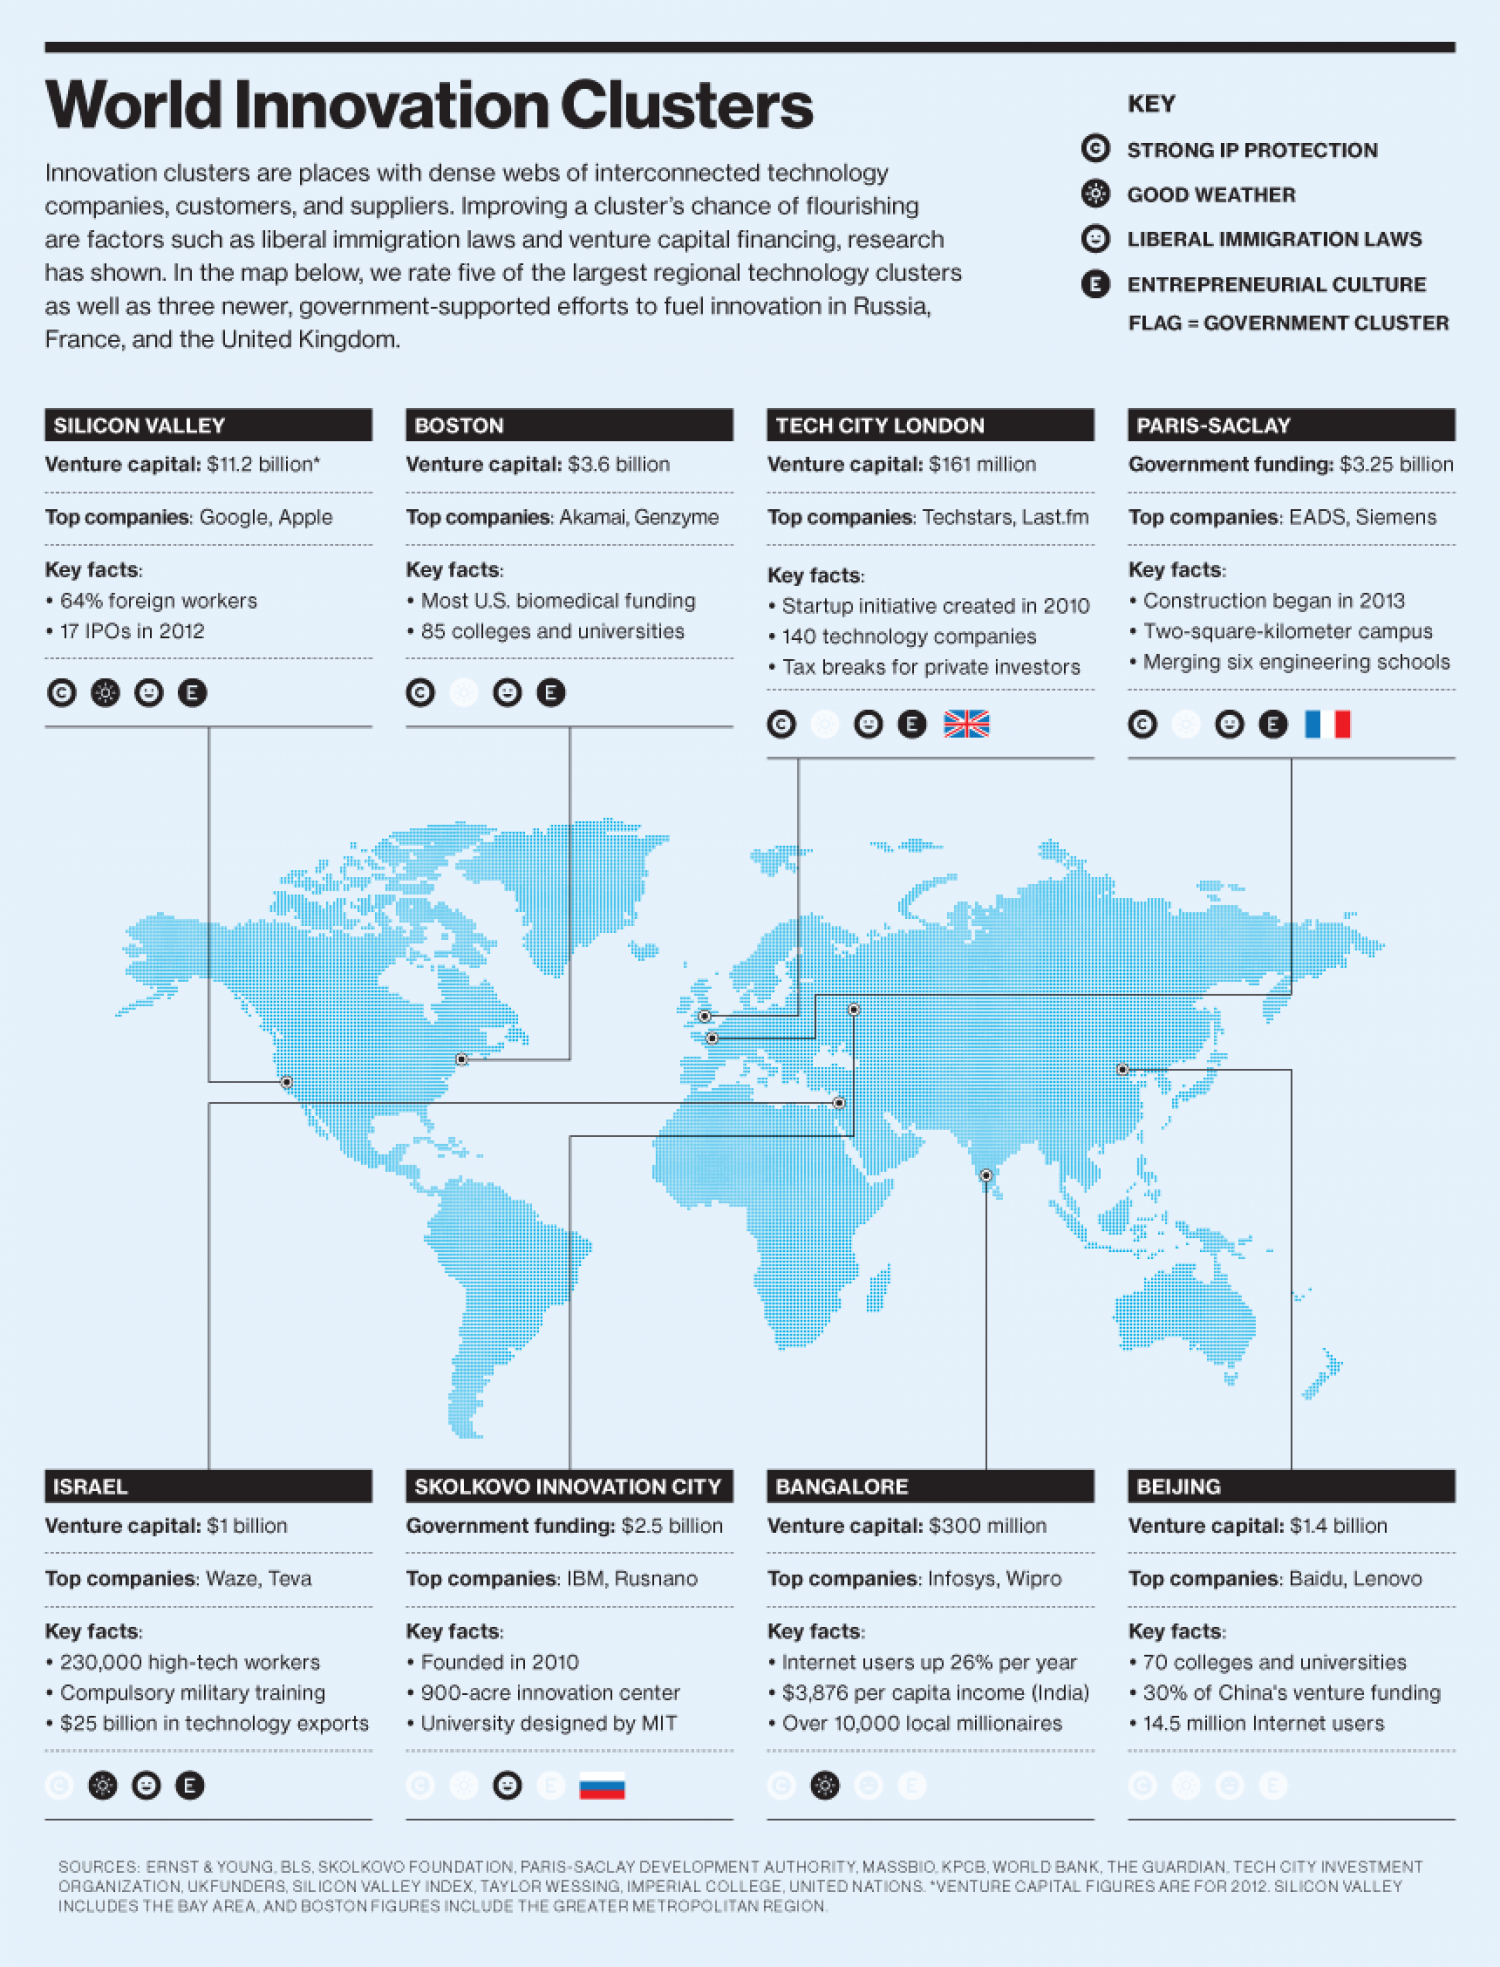 World Innovation Clusters Infographic